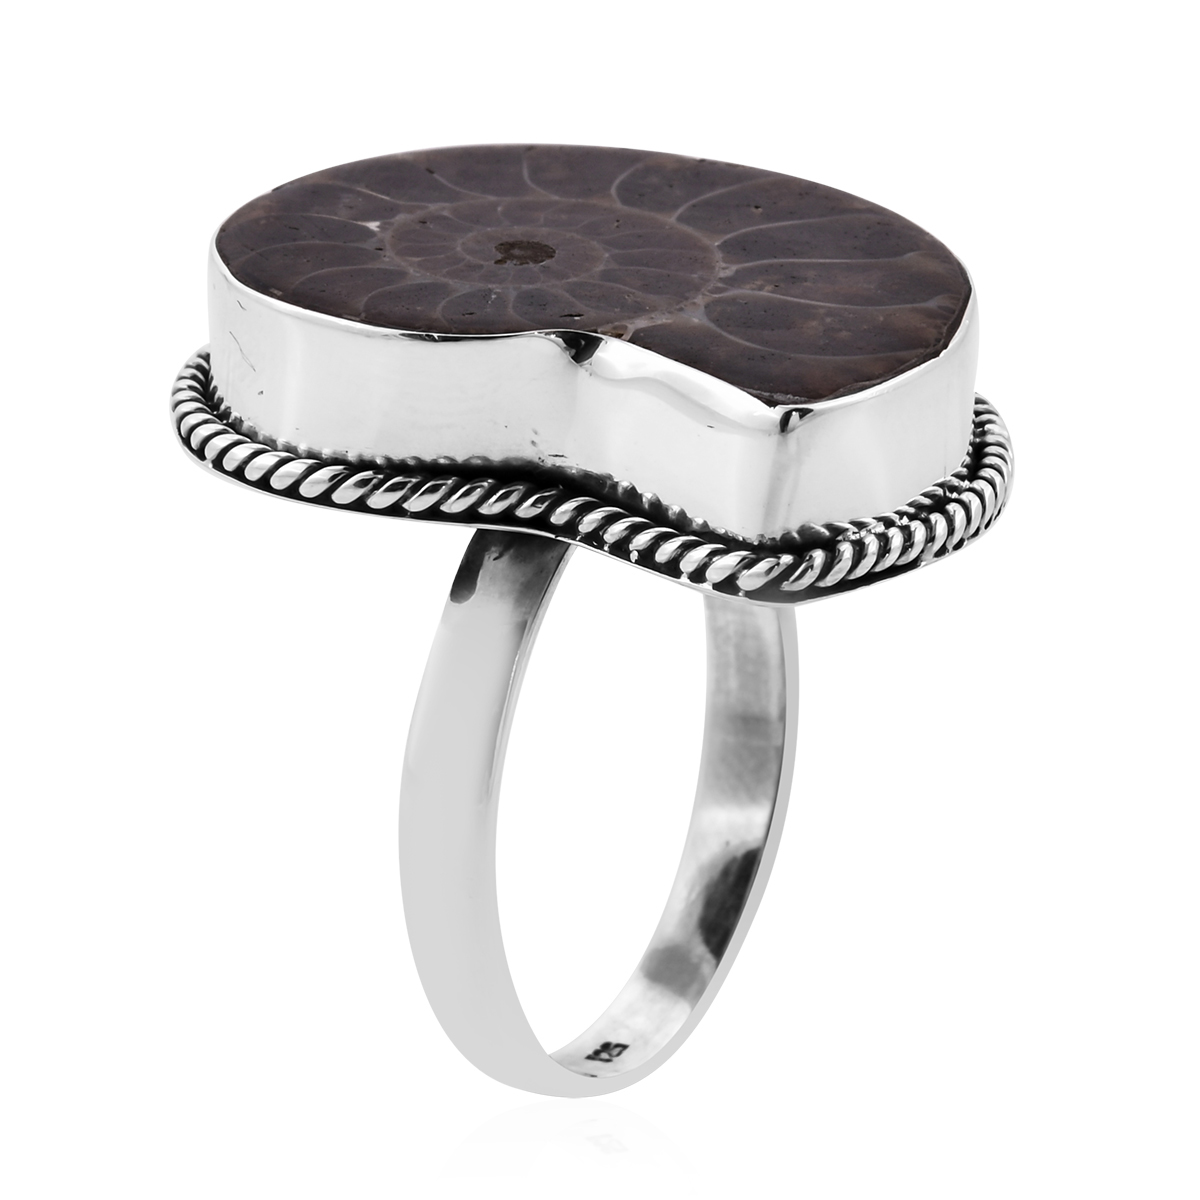 Cocktail-Ring-925-Sterling-Silver-Gift-Jewelry-for-Women-Ct-21-3 thumbnail 12